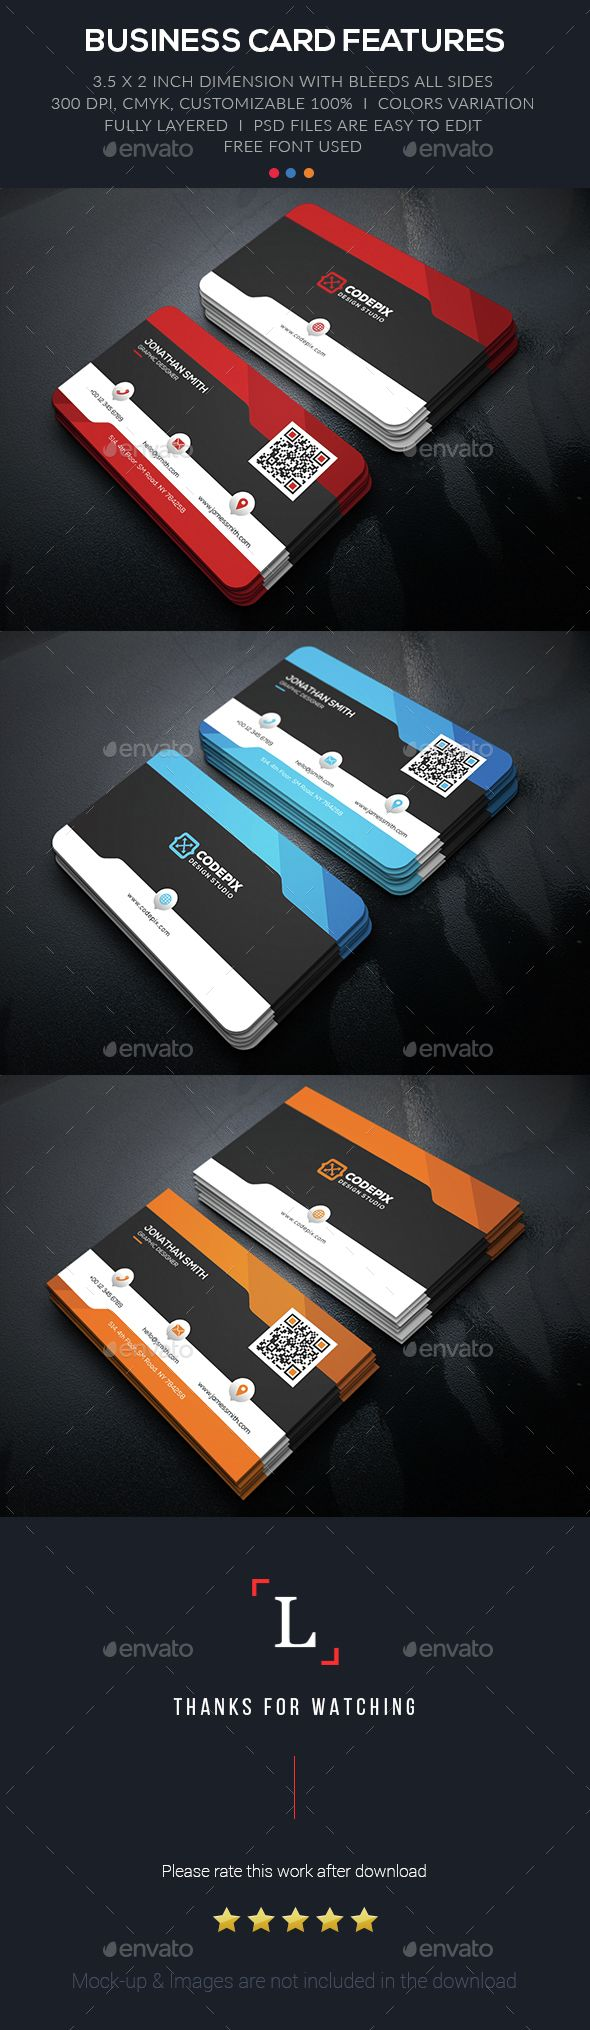 102 best business card design images on pinterest business card corporate business card reheart Image collections